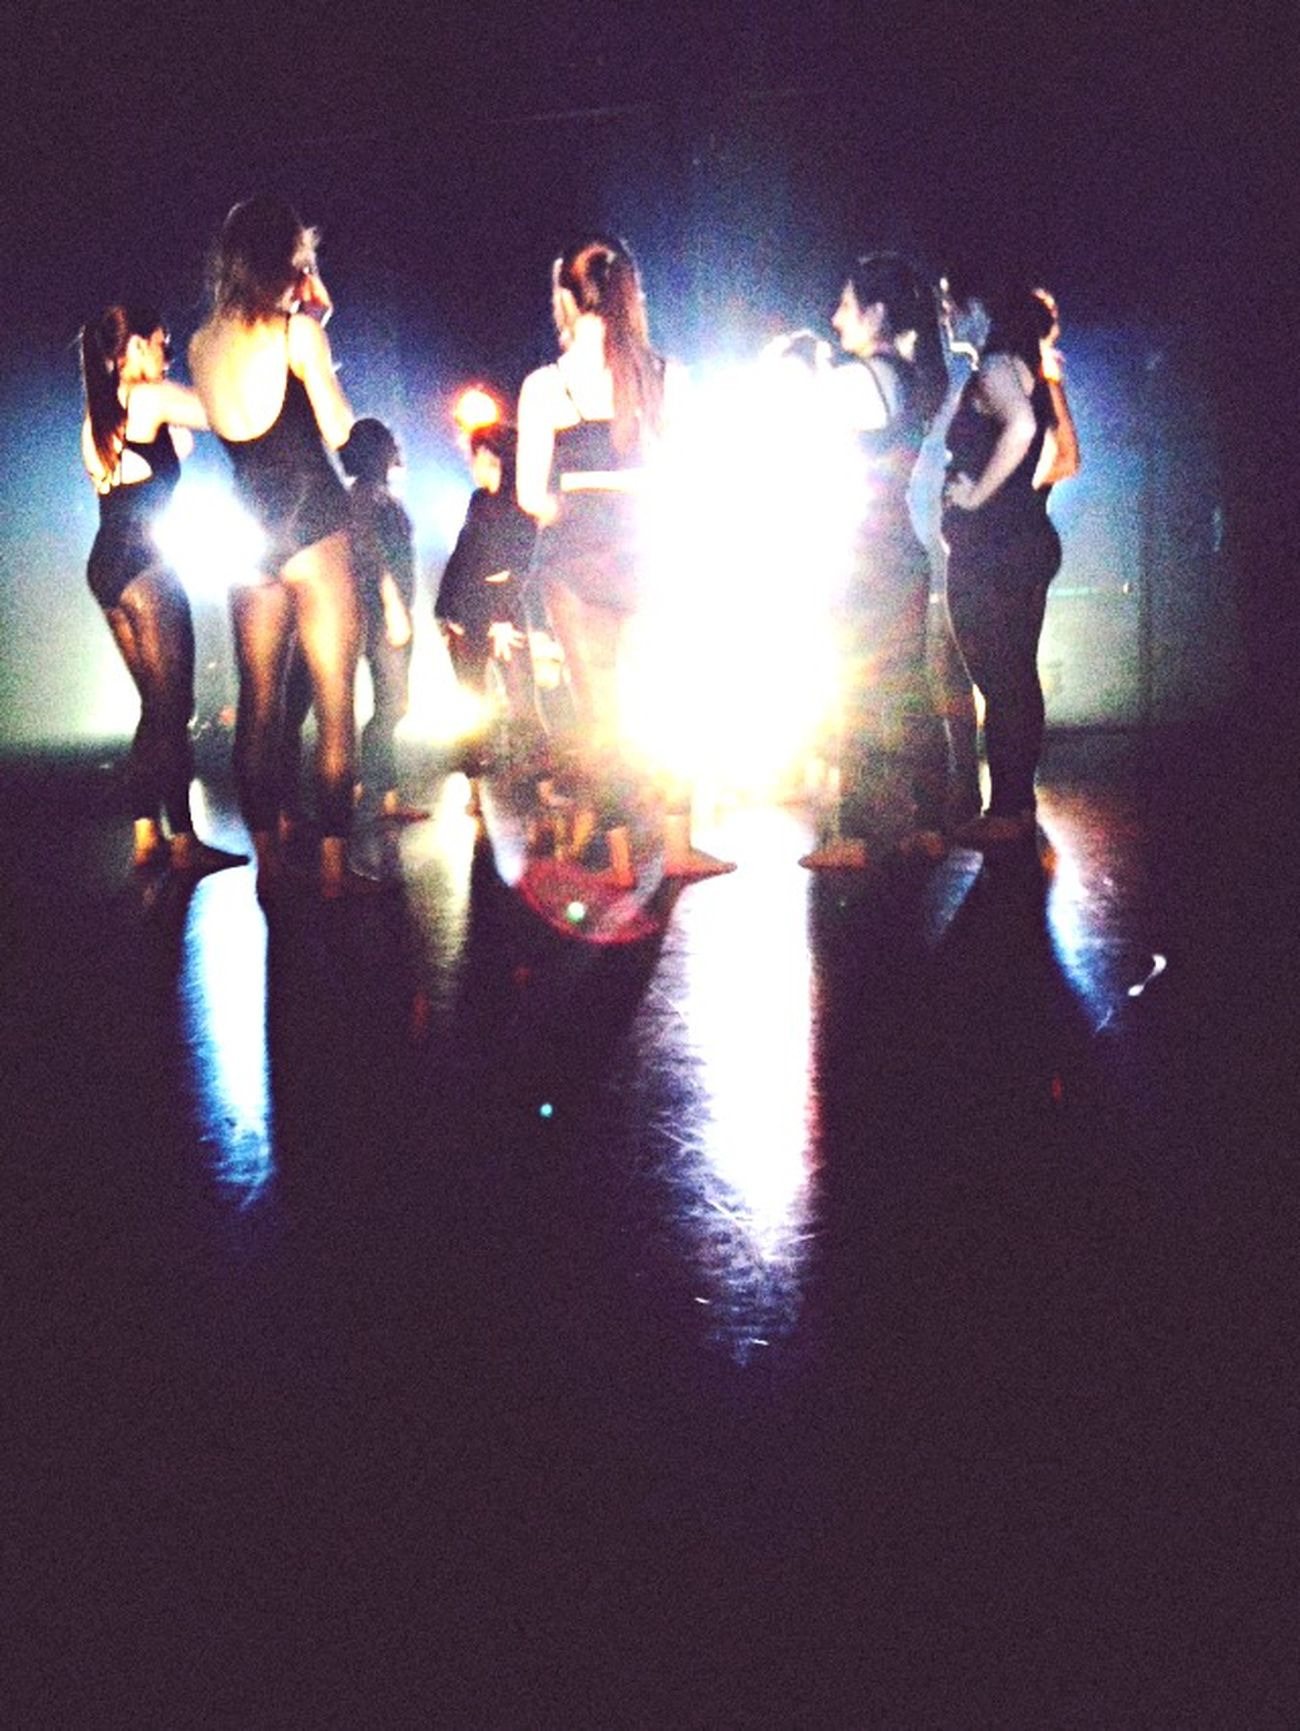 Teching Dance Dancer Leotard Lights Dancing